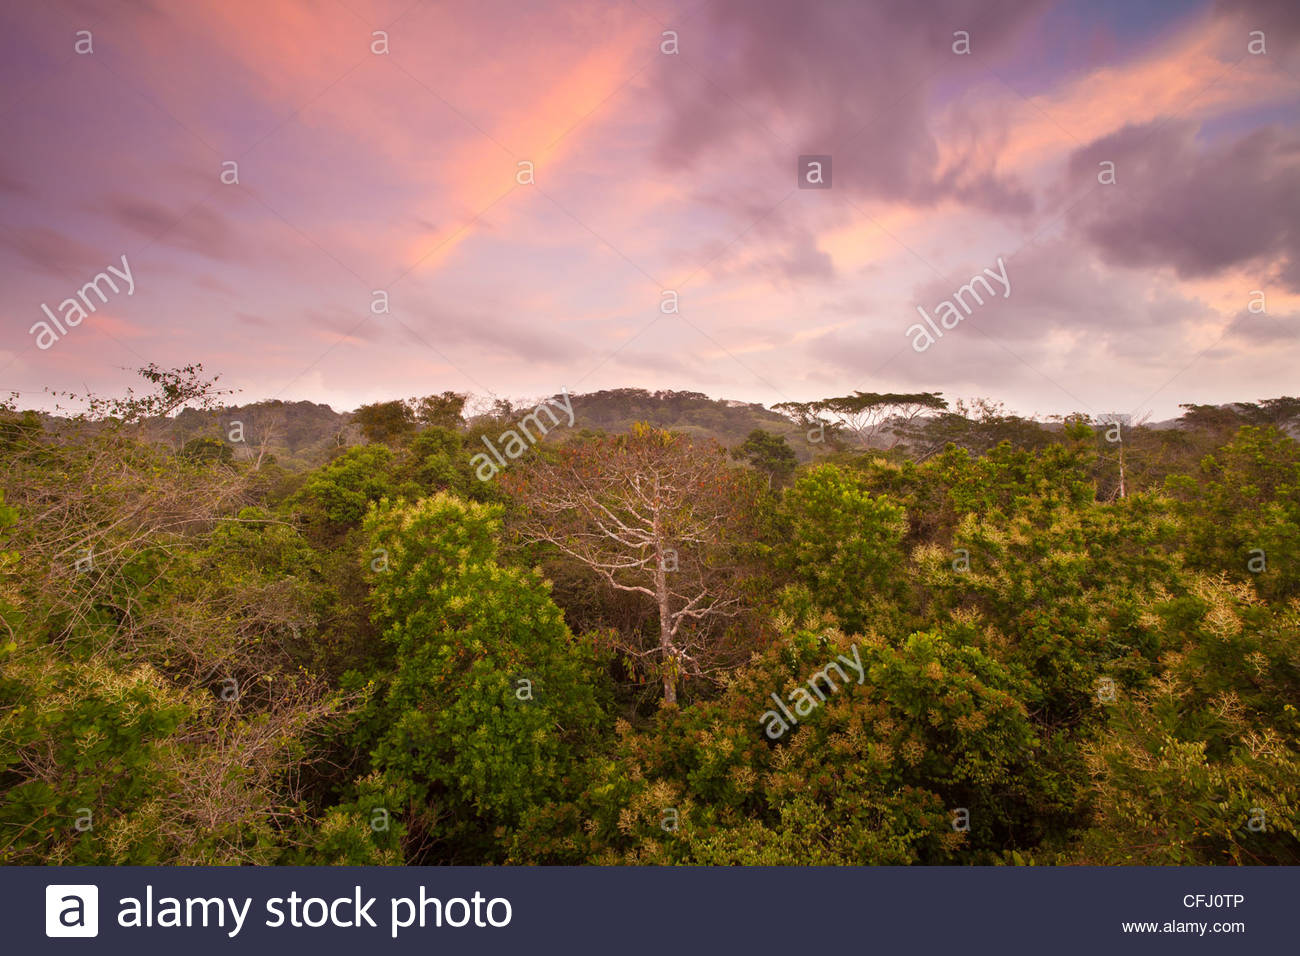 Early morning in the rainforest of Soberania national park, Republic of Panama. Stock Photo